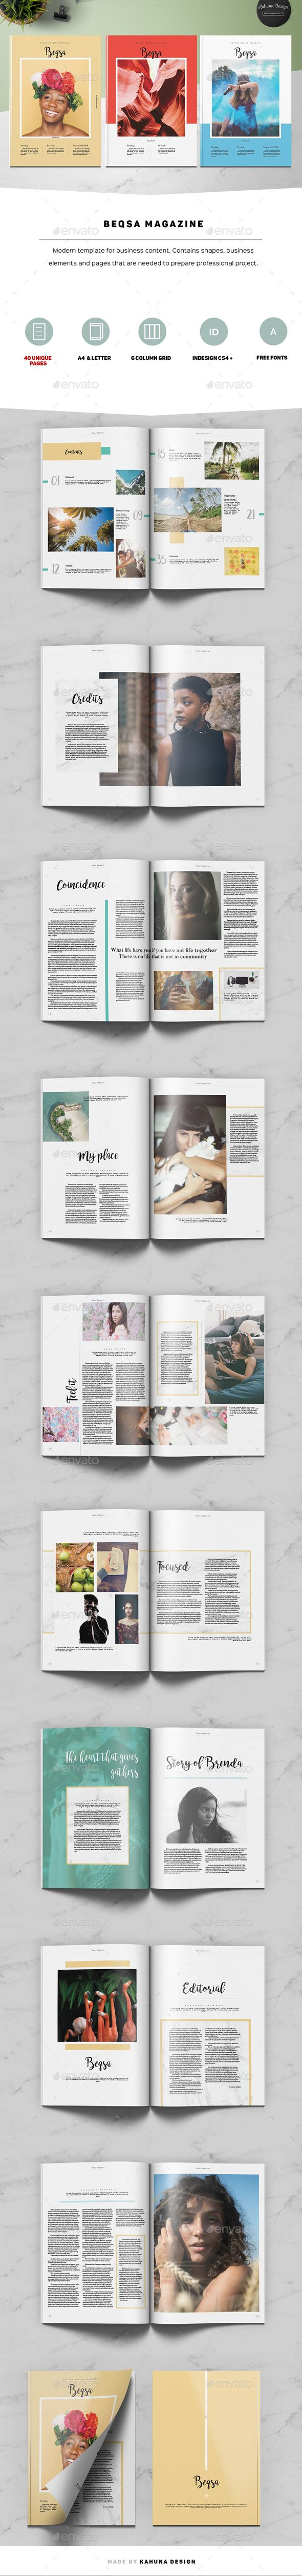 Beqsa Magazine Template InDesign INDD - 40 Pages - A4 and Letter ...